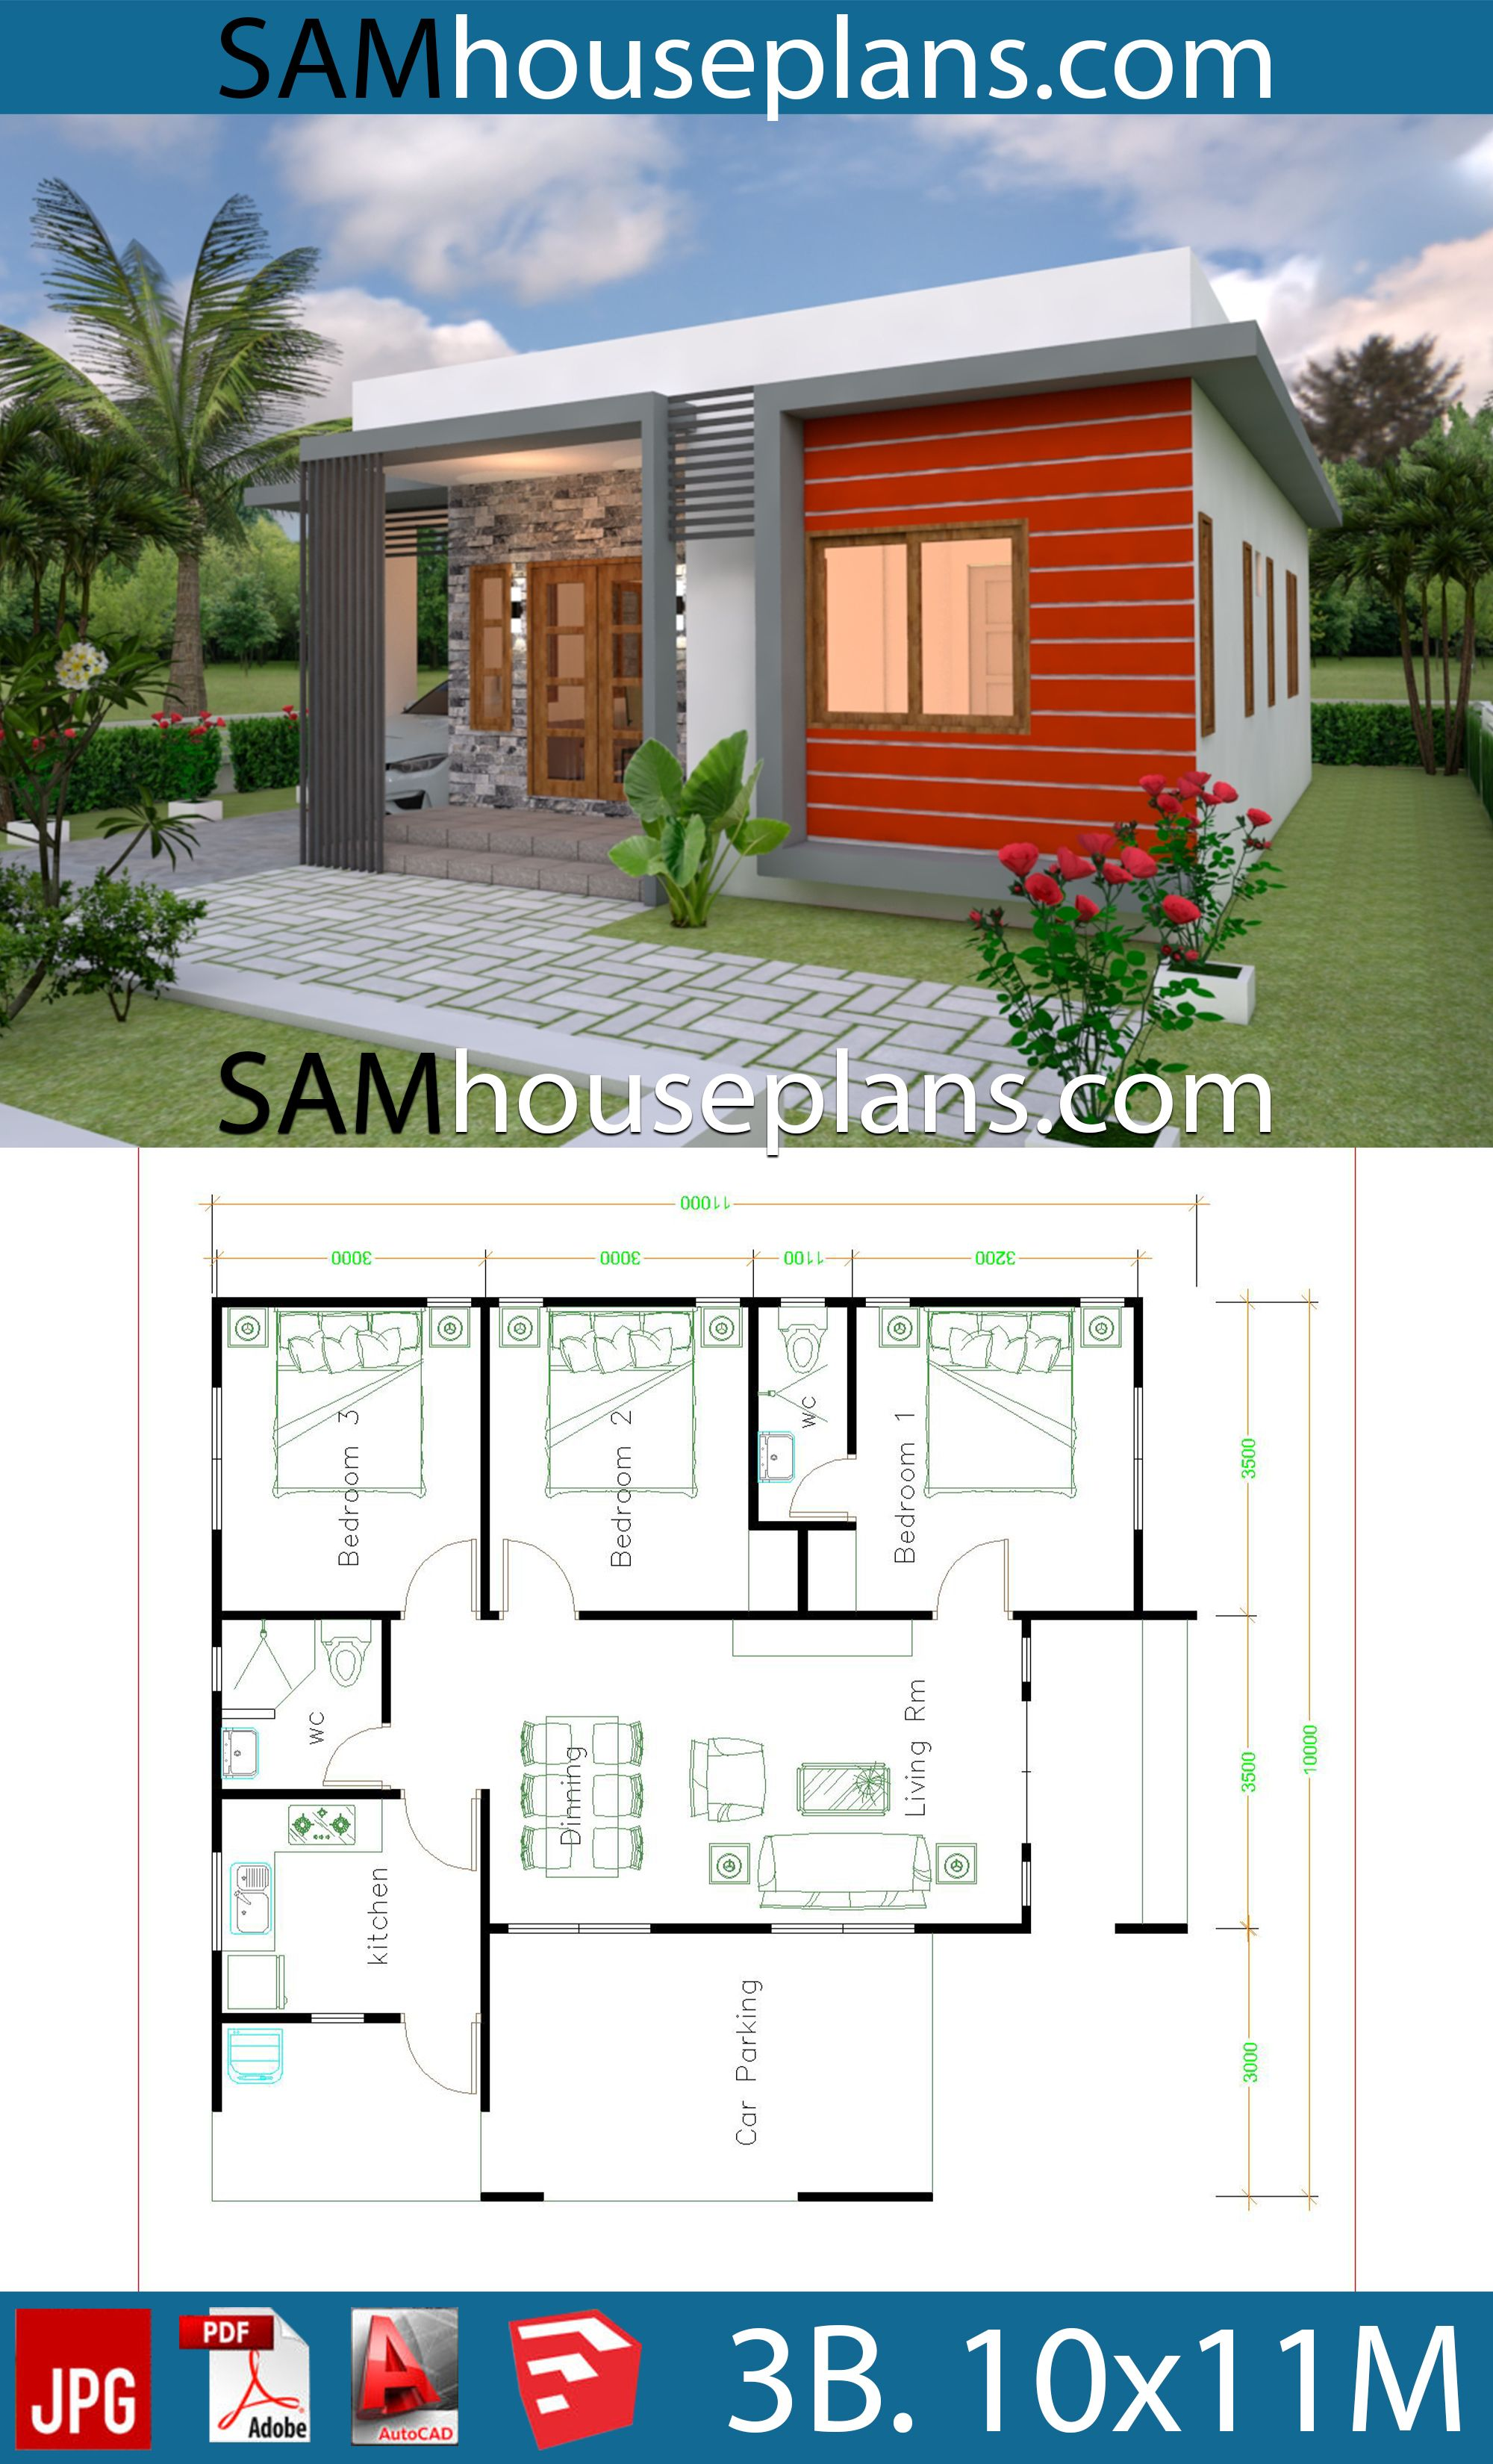 House Plans 10x11 With 3 Bedrooms House Plans Free Downloads Modern House Plans Affordable House Plans Architectural Design House Plans